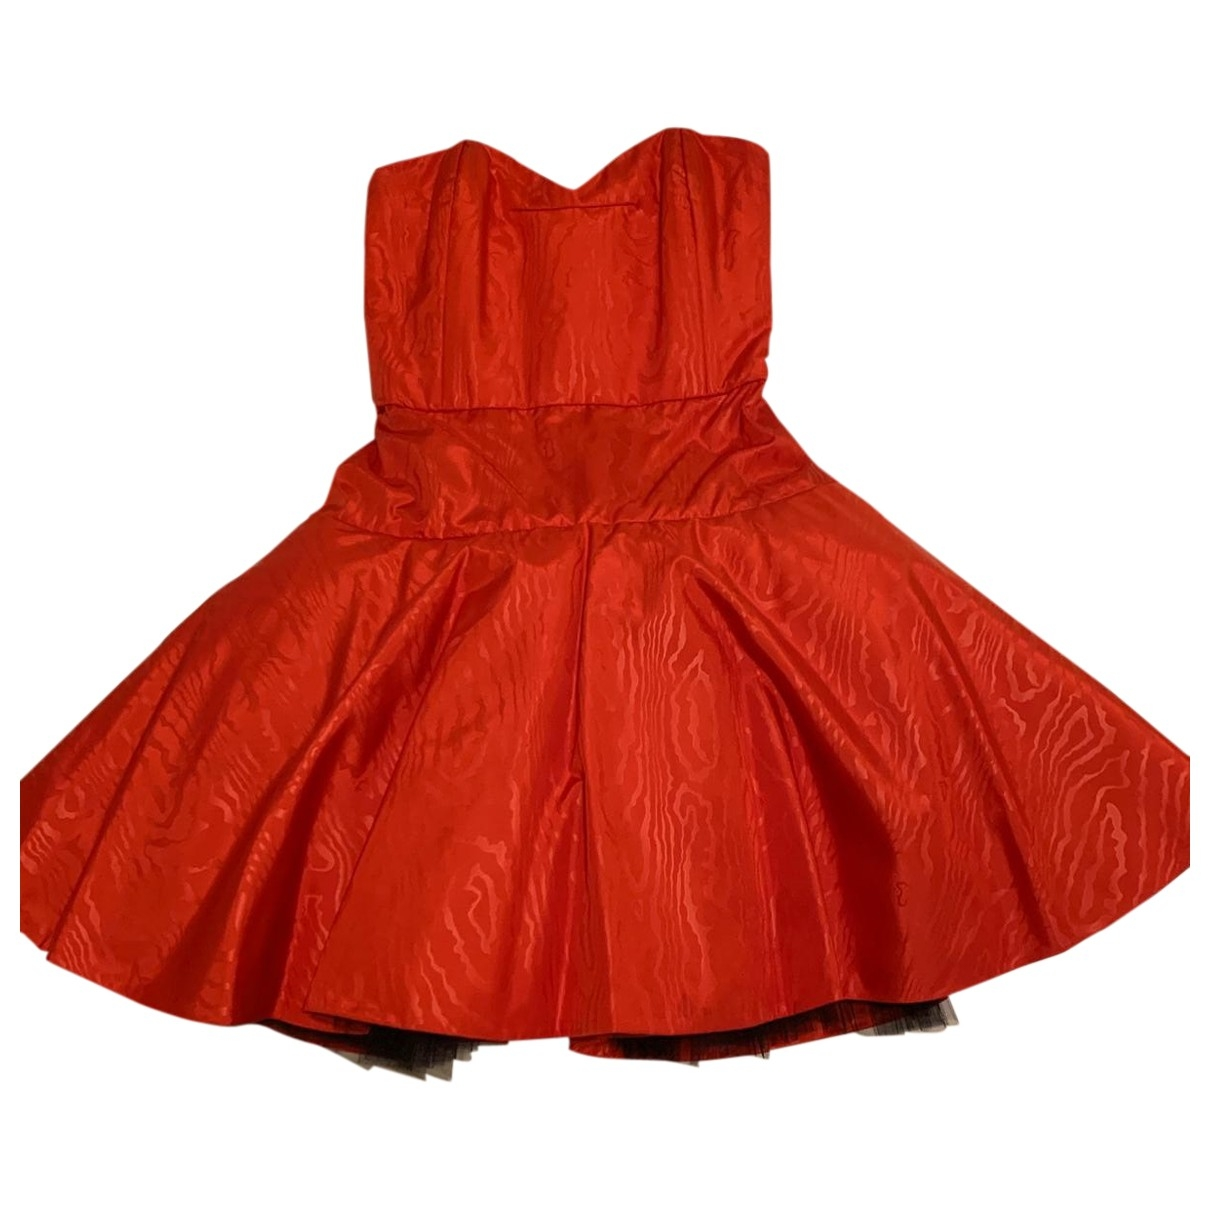 Non Signe / Unsigned \N Kleid in  Rot Synthetik